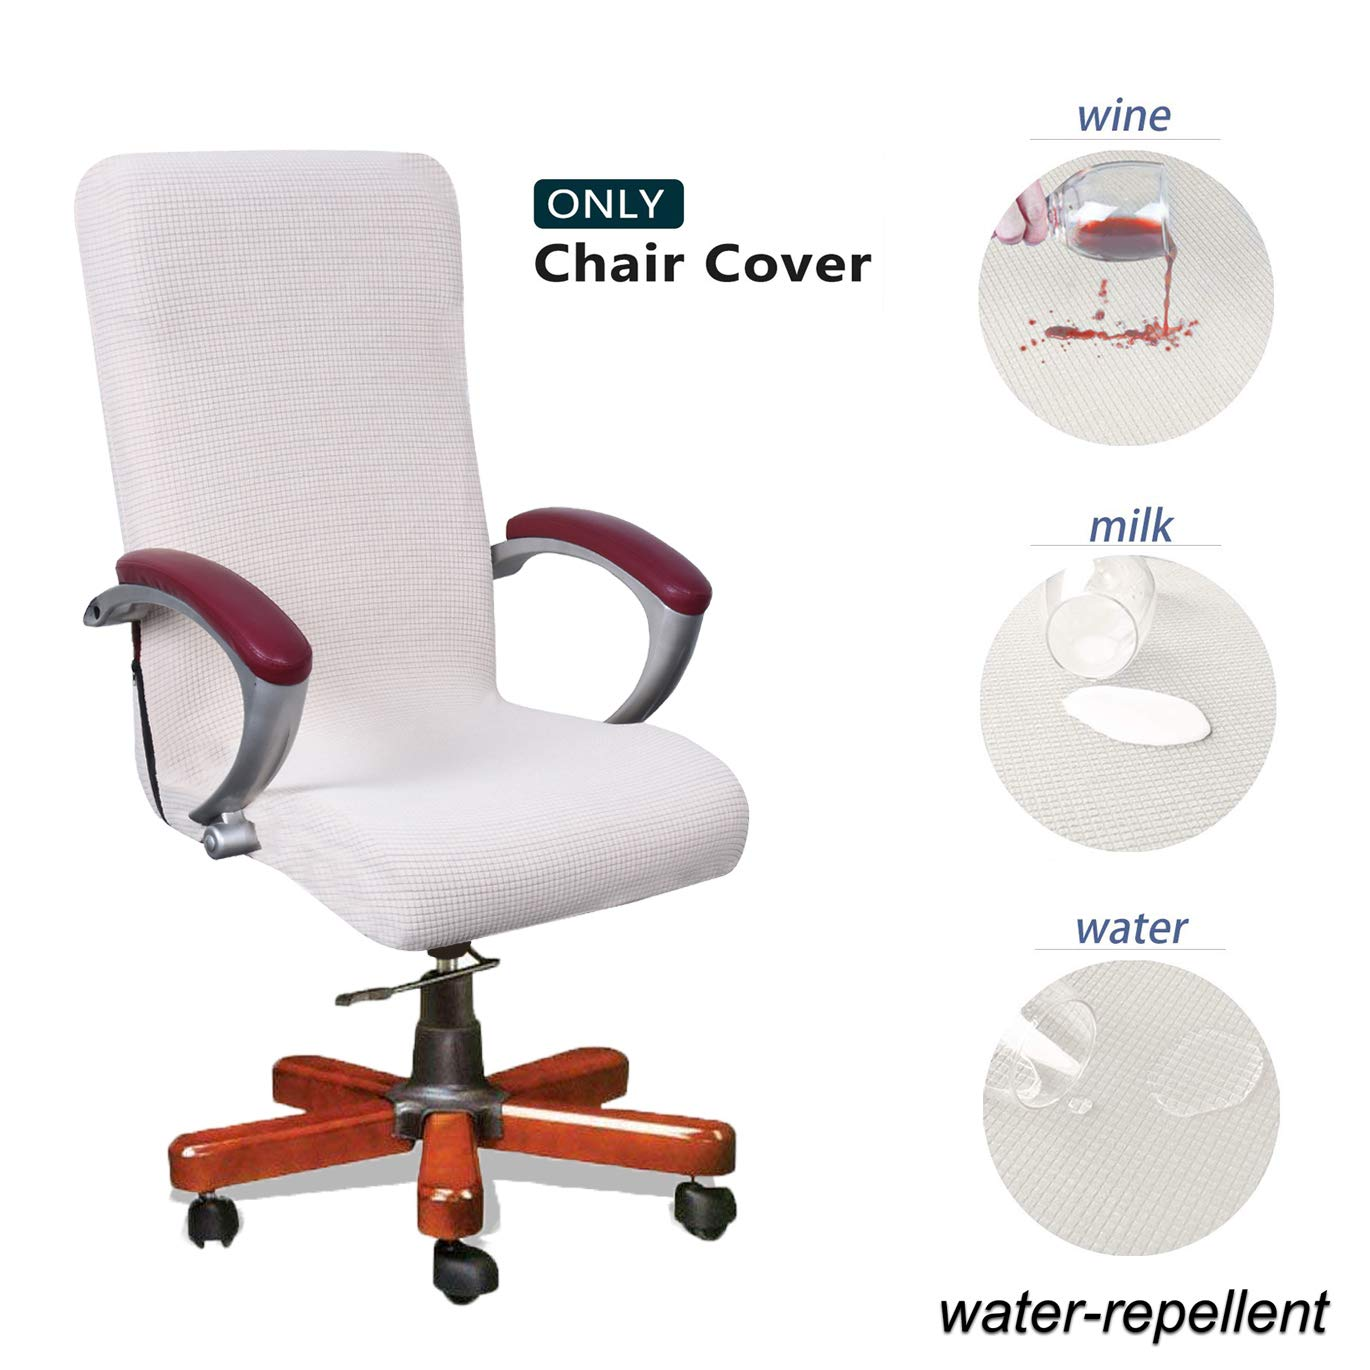 WOMACO Waterproof Office Chair Cover Jacquard Computer Office Chair Covers Water-Repellent Universal Boss Chair Covers Modern Simplism Style High Back Chair Slipcover 2-Light Gray, Large